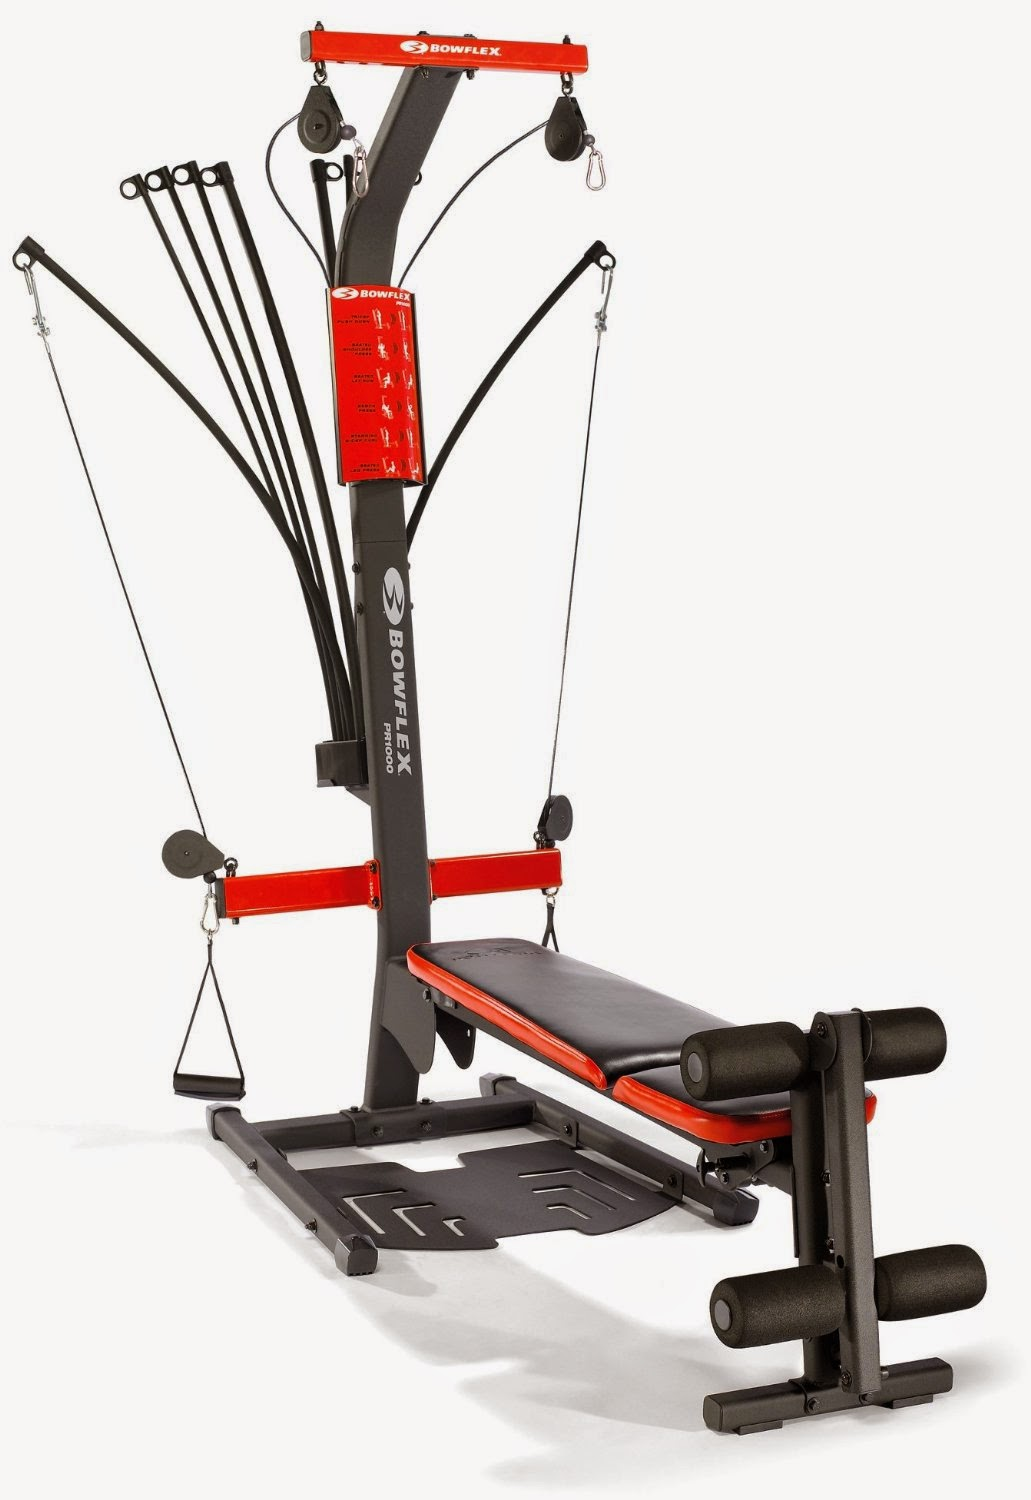 Bowflex PR1000 Home Gym, picture, review features & specifications, compare with Bowflex PR3000